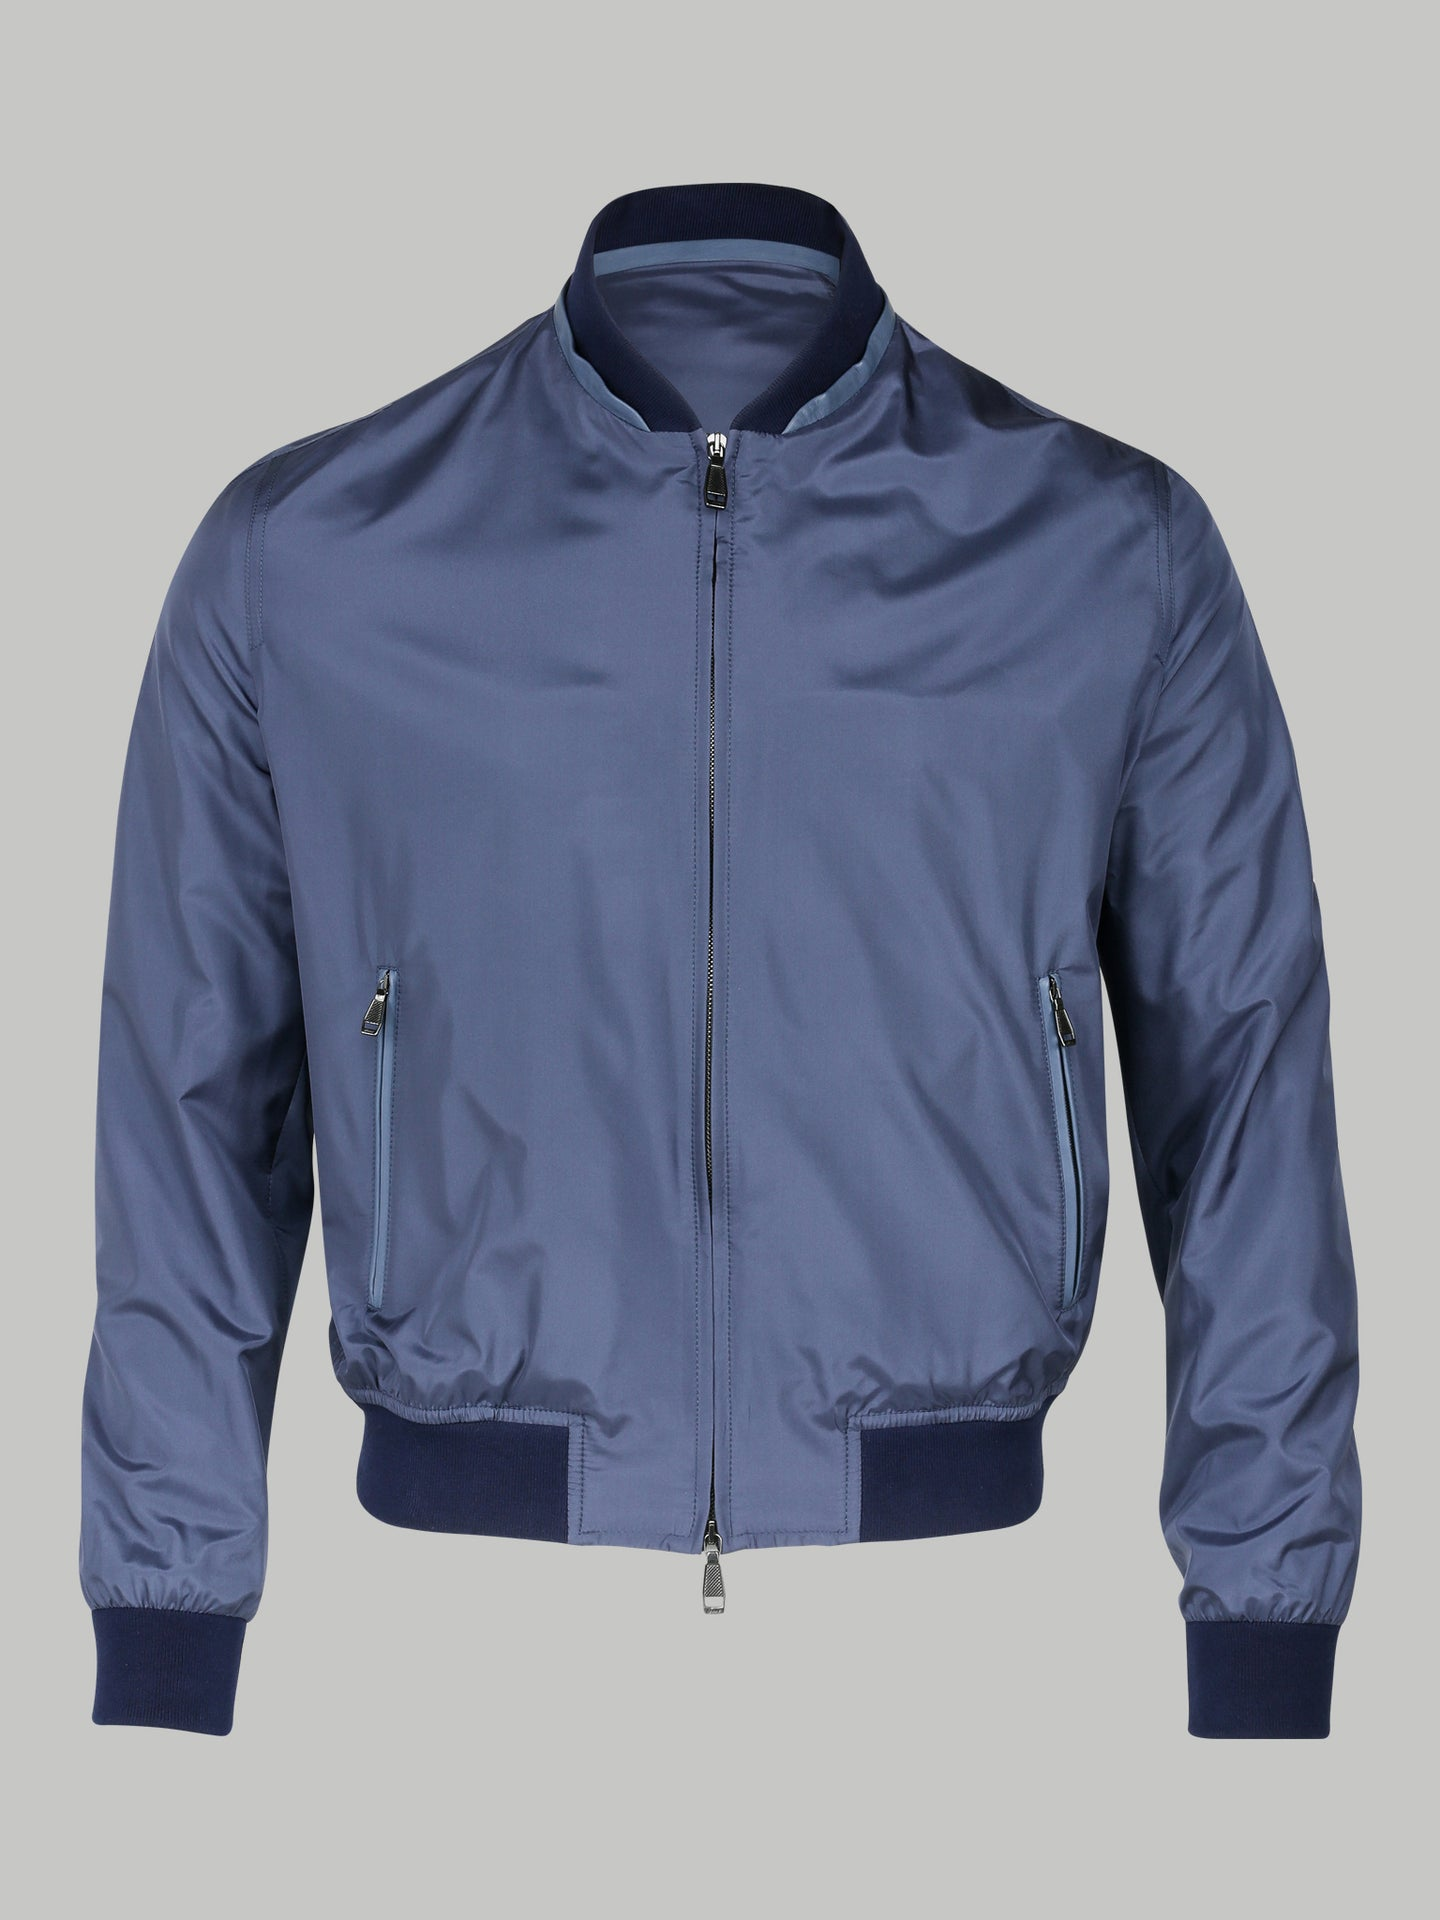 Brioni Silk Bomber (Blue) - Union 22